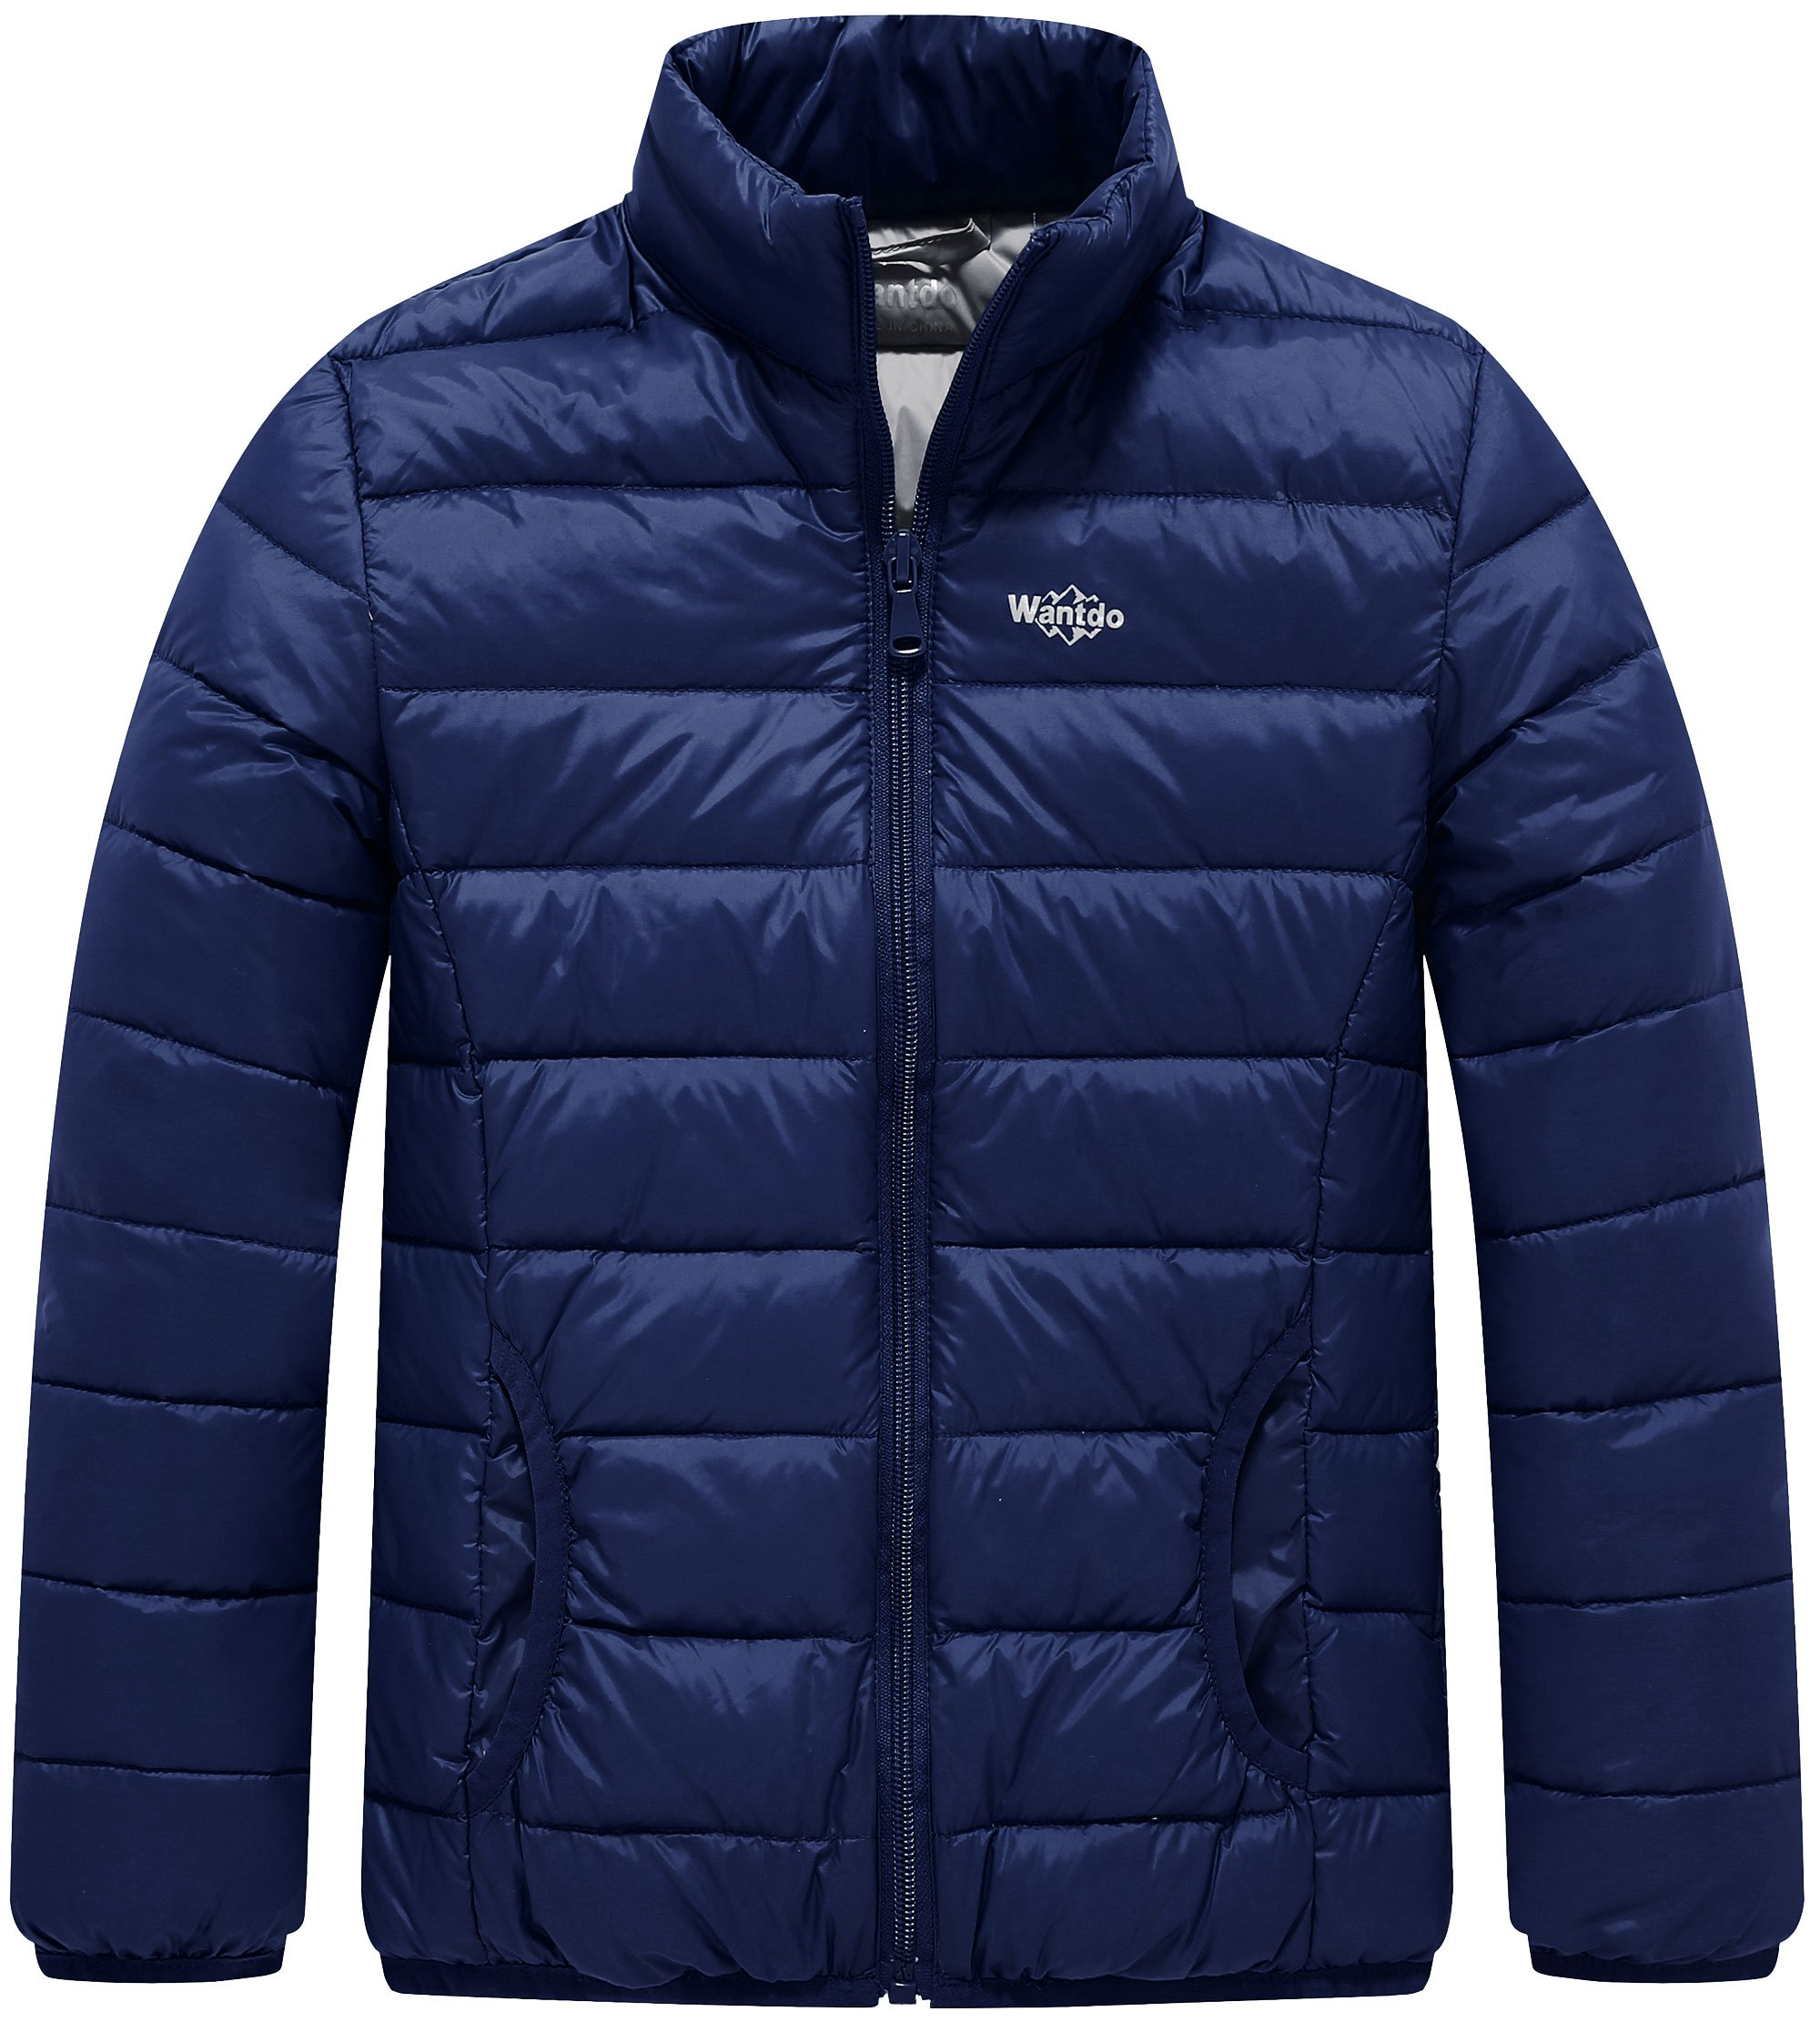 Wantdo Boy's Ultra Light Stand-up Collar Winter Jacket Windproof Travel Down Coats Outwear(Navy, 6/7)